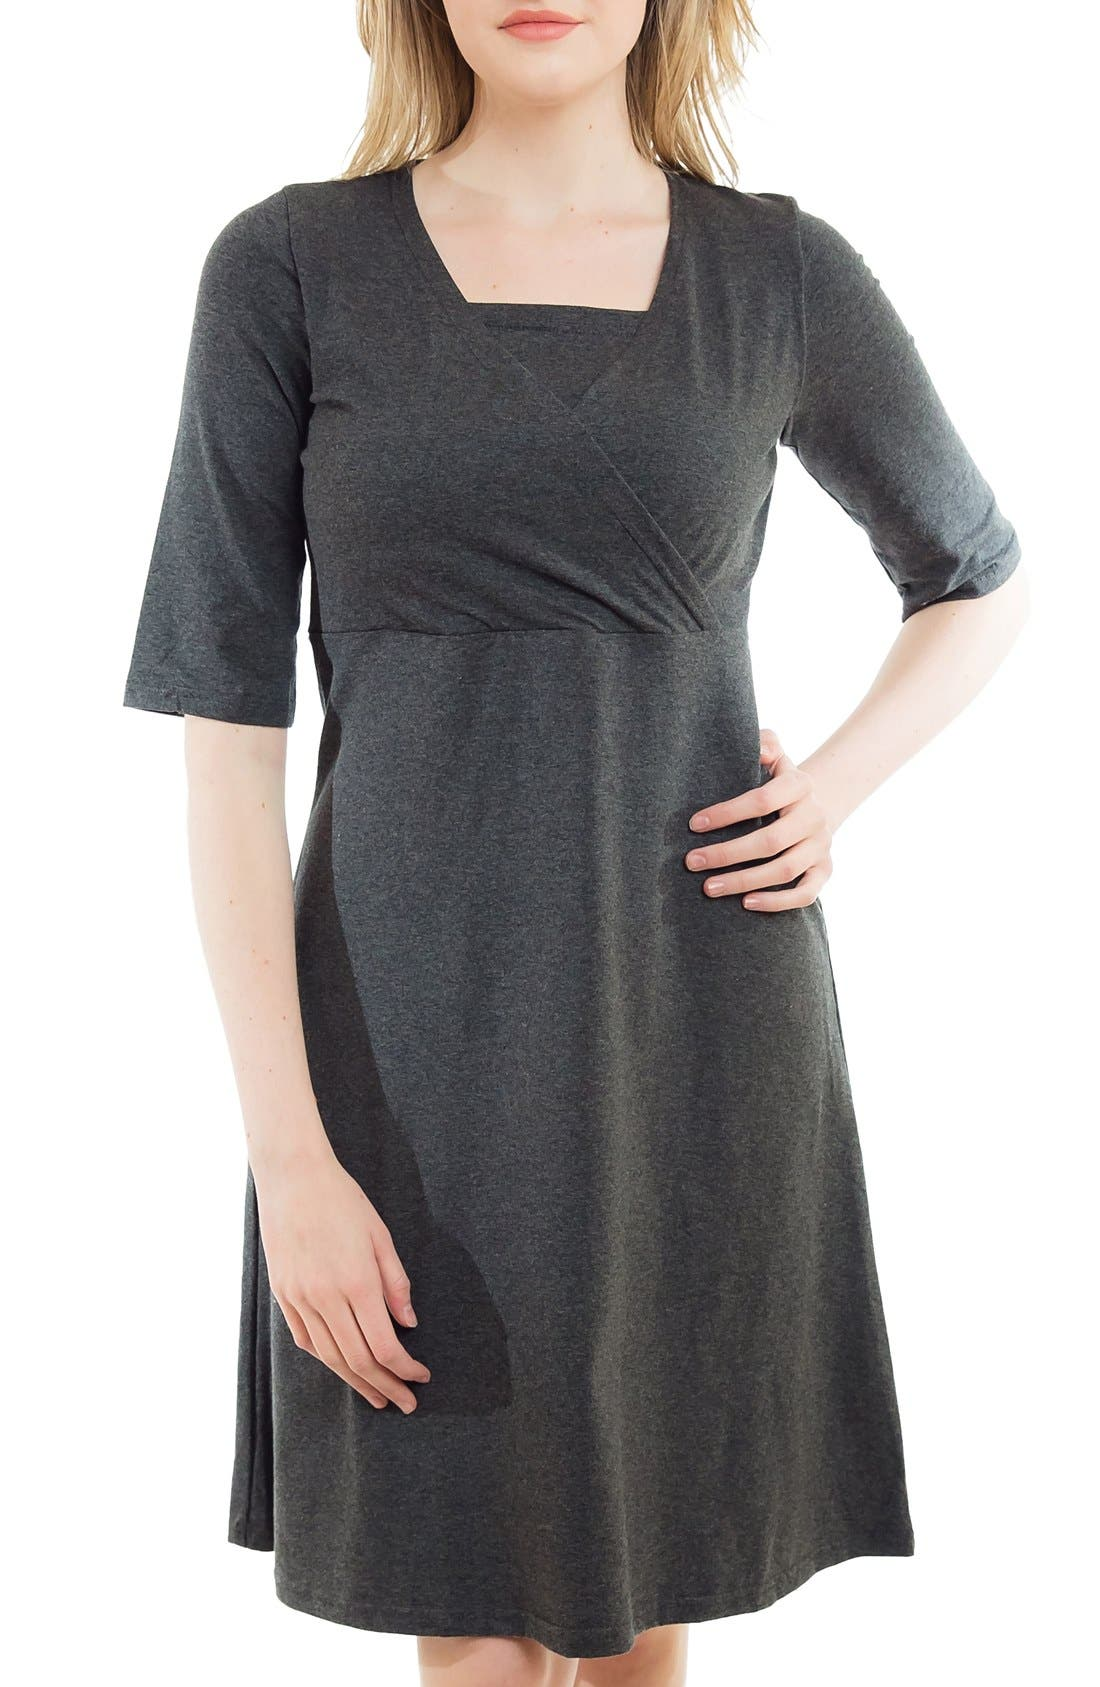 Crossover Maternity/Nursing Dress,                         Main,                         color, HEATHER CHARCOAL